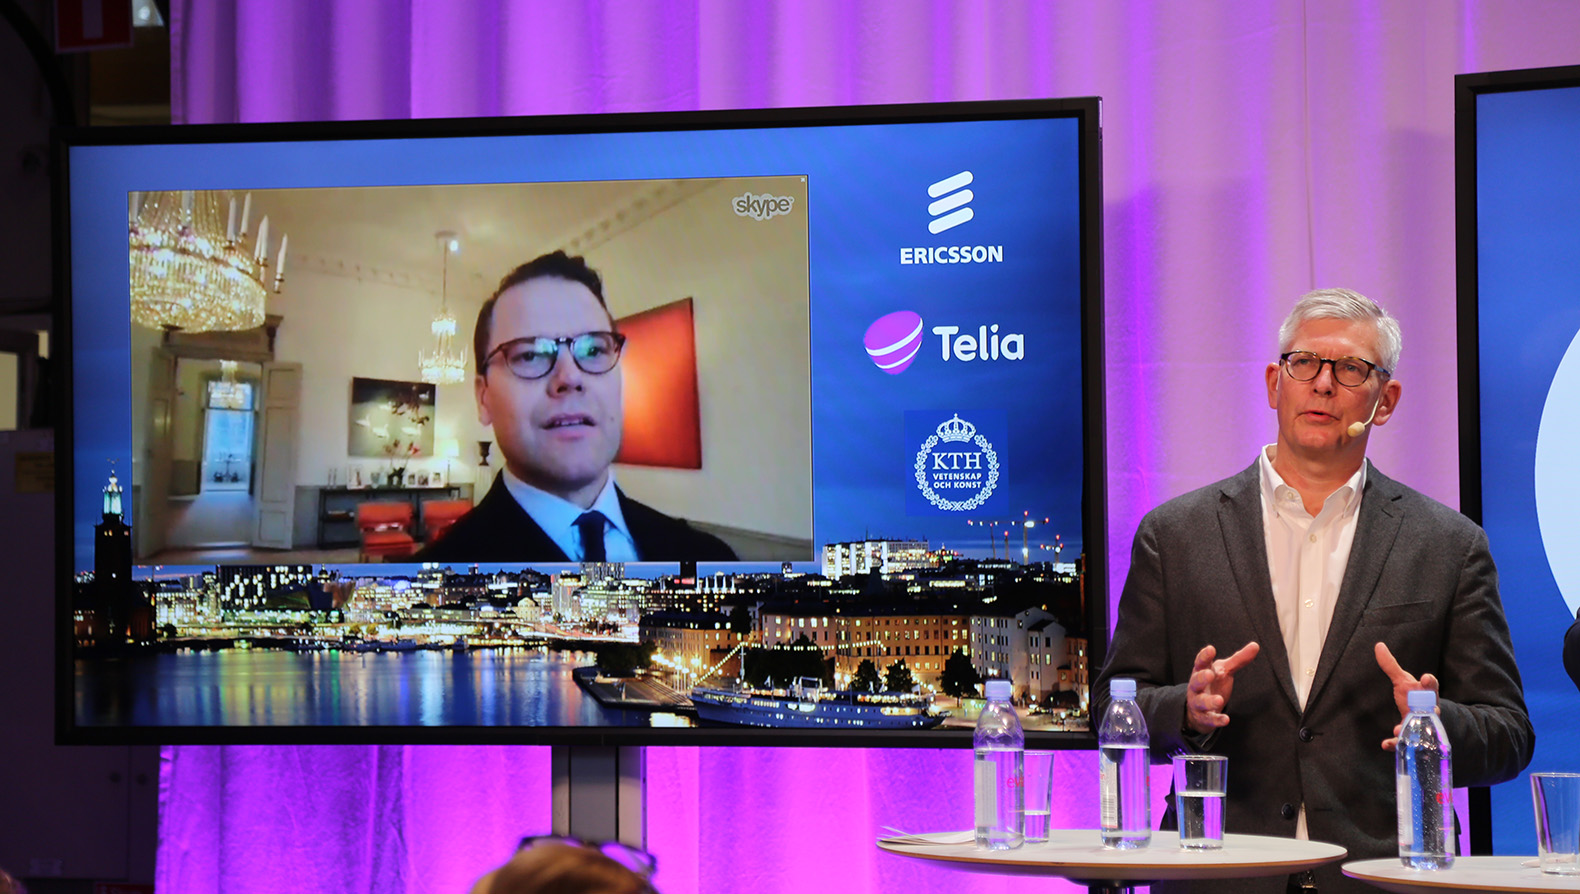 Sweden's first 5G network is live at KTH Royal Institute of